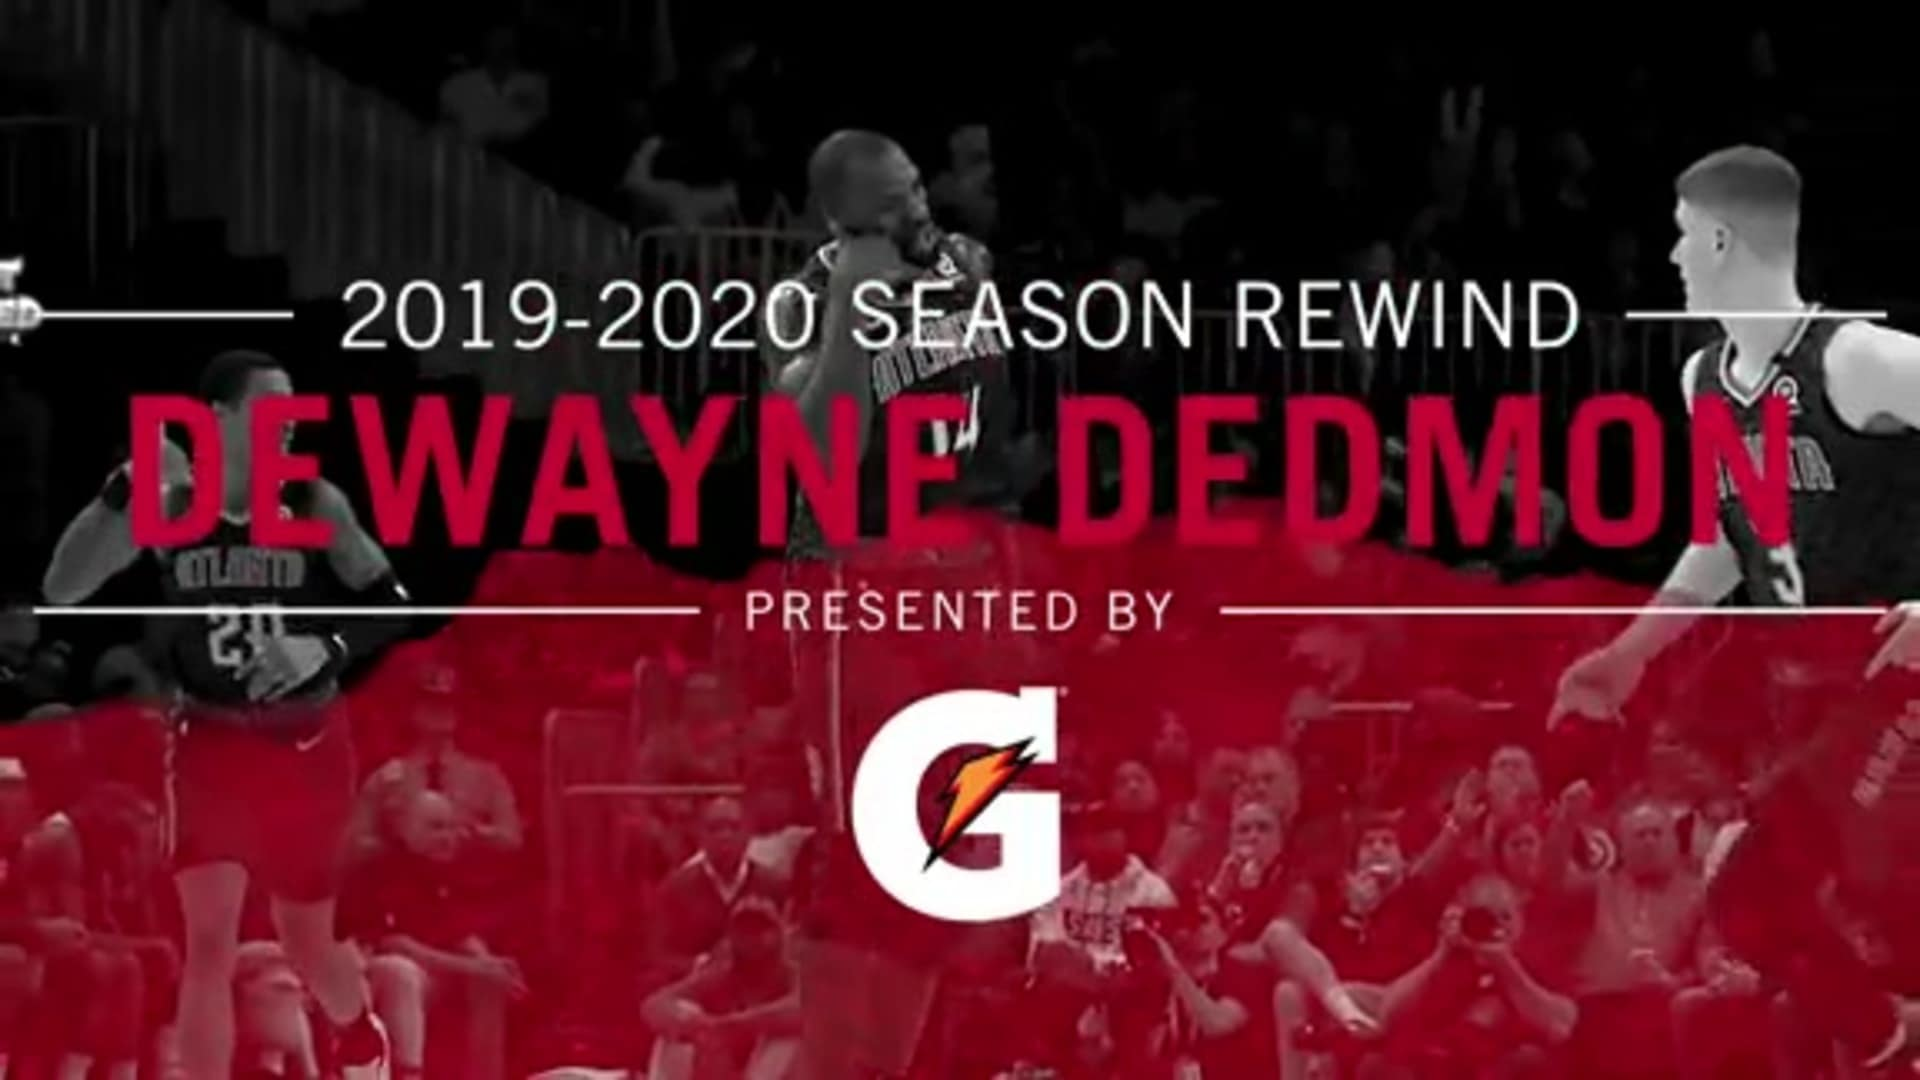 19-20 Season Rewind Presented by Gatorade: Dewayne Dedmon's Top Plays